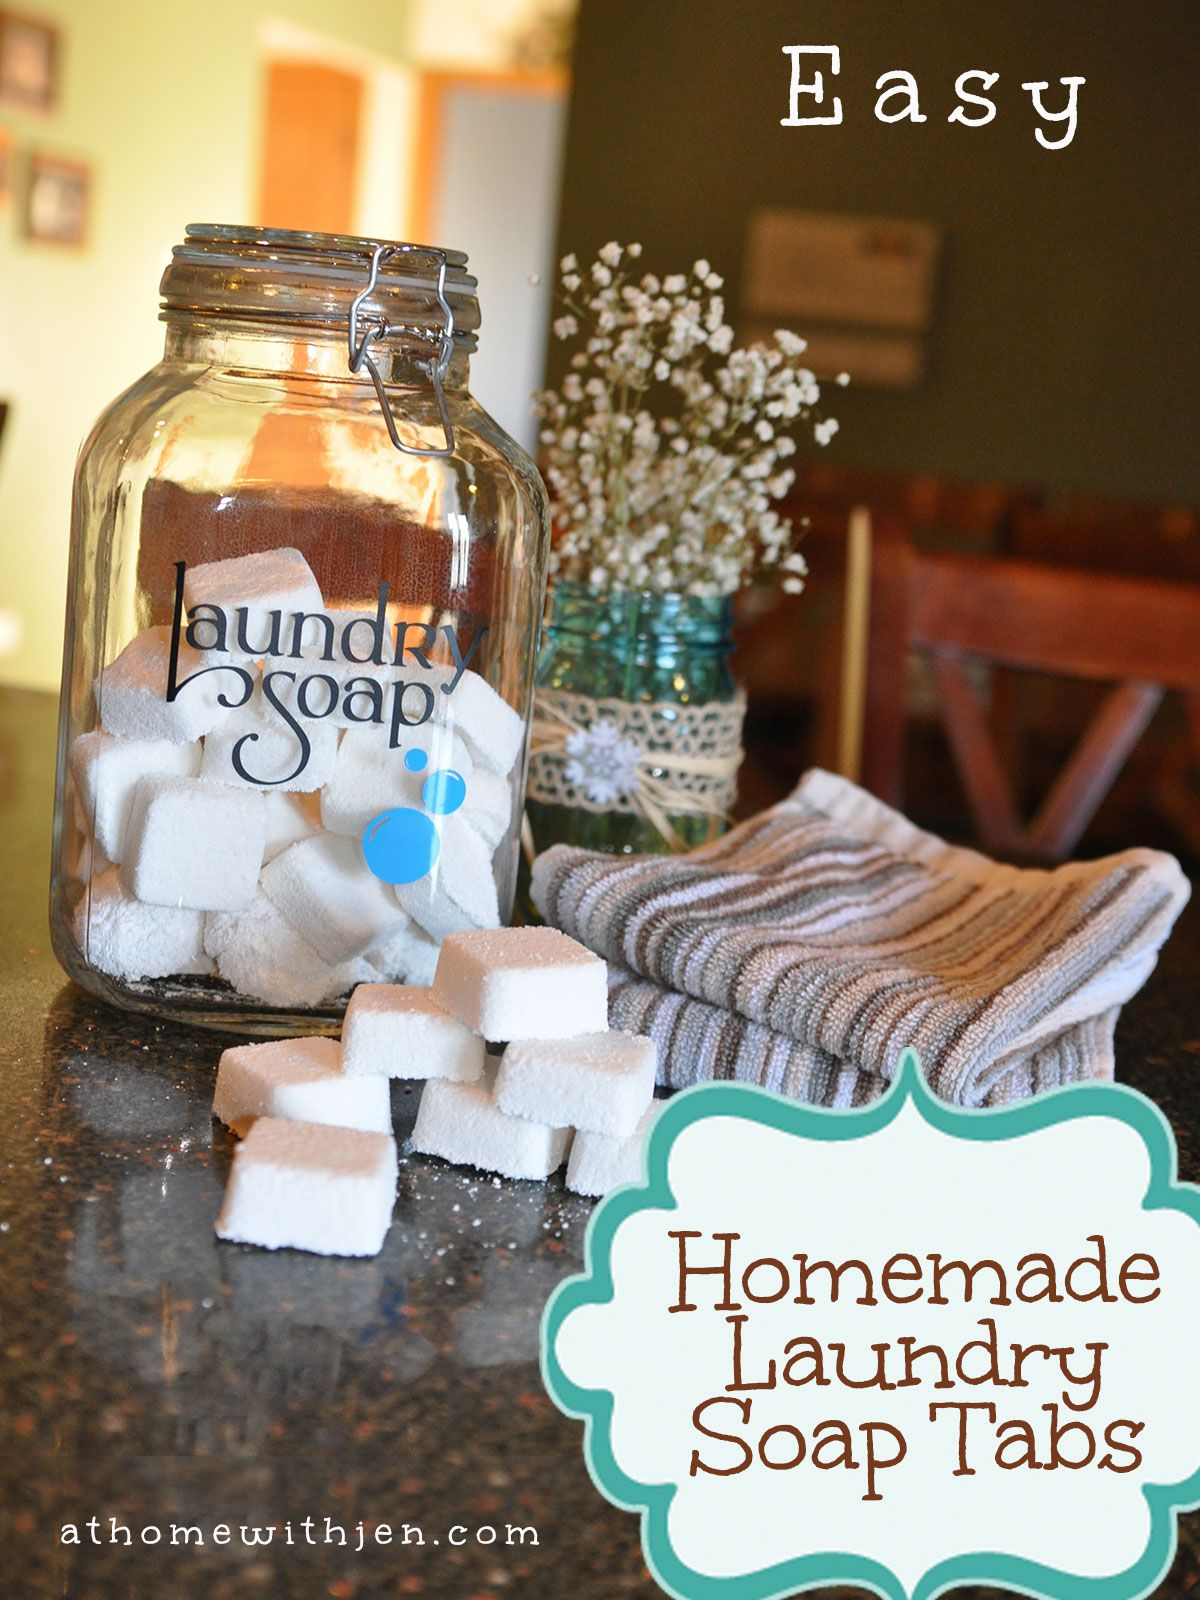 Diy Soap With Essential Oils Homemade Laundry Detergent Tabs Works In He Washers